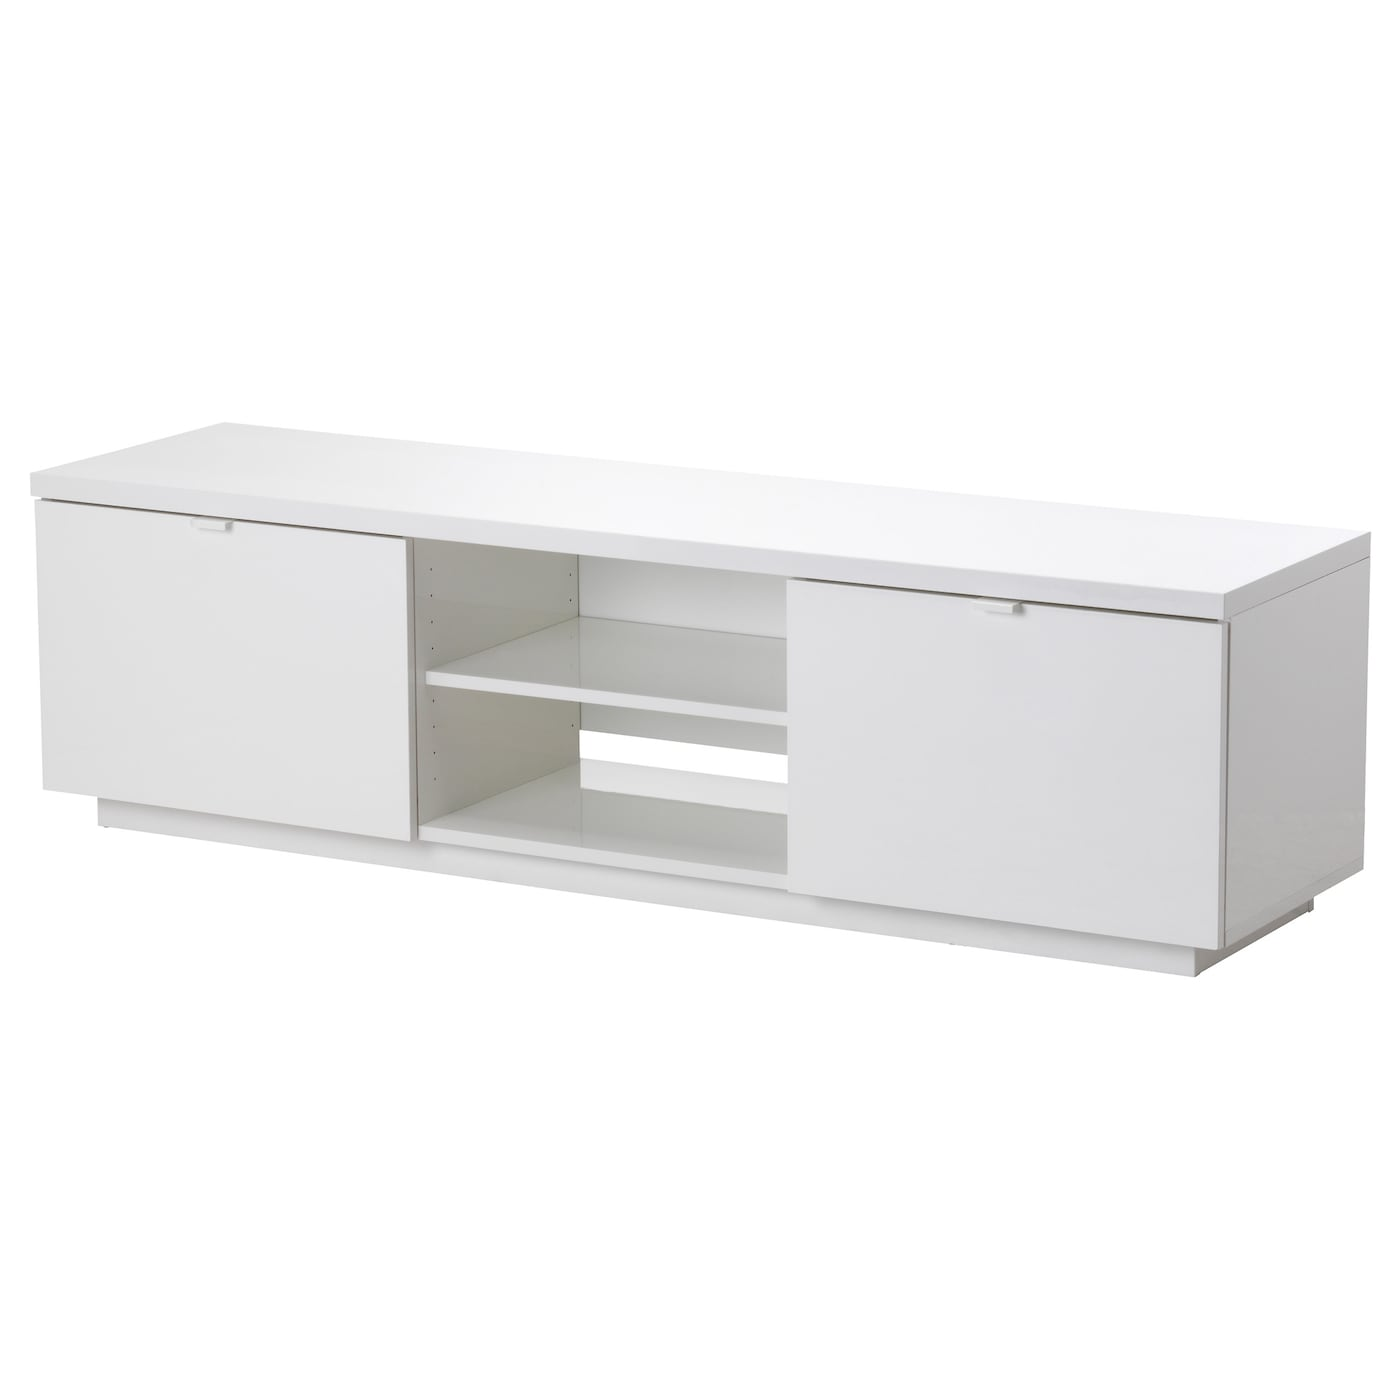 By s tv bench high gloss white 160x42x45 cm ikea for Meuble console ikea